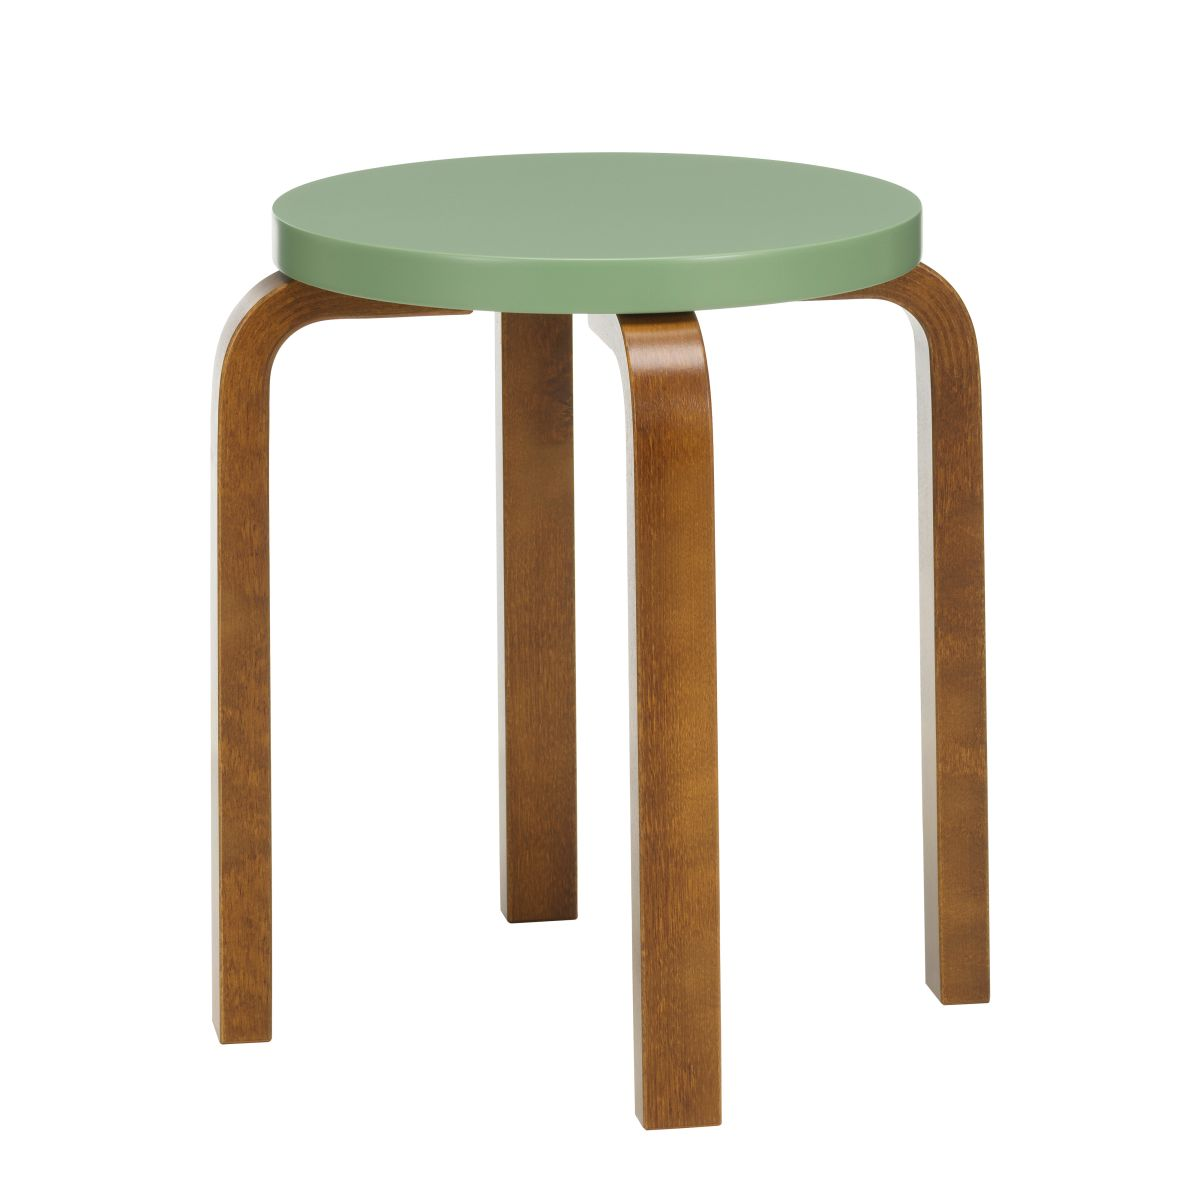 Stool_E60_walnut_stain_pale_green_lacquer_F